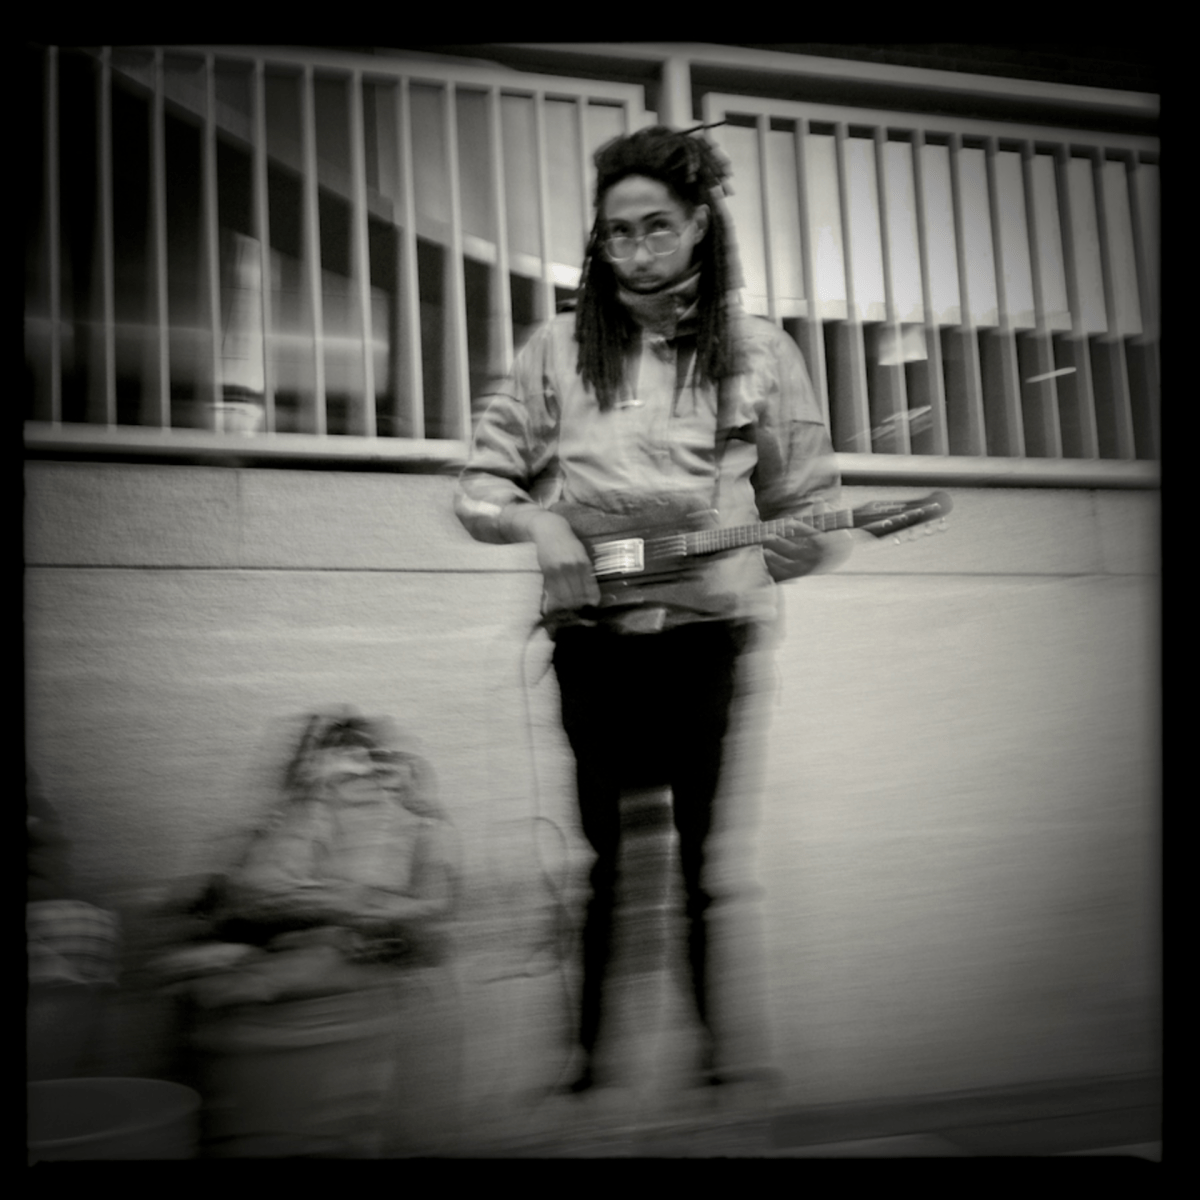 A street performer in D.C.